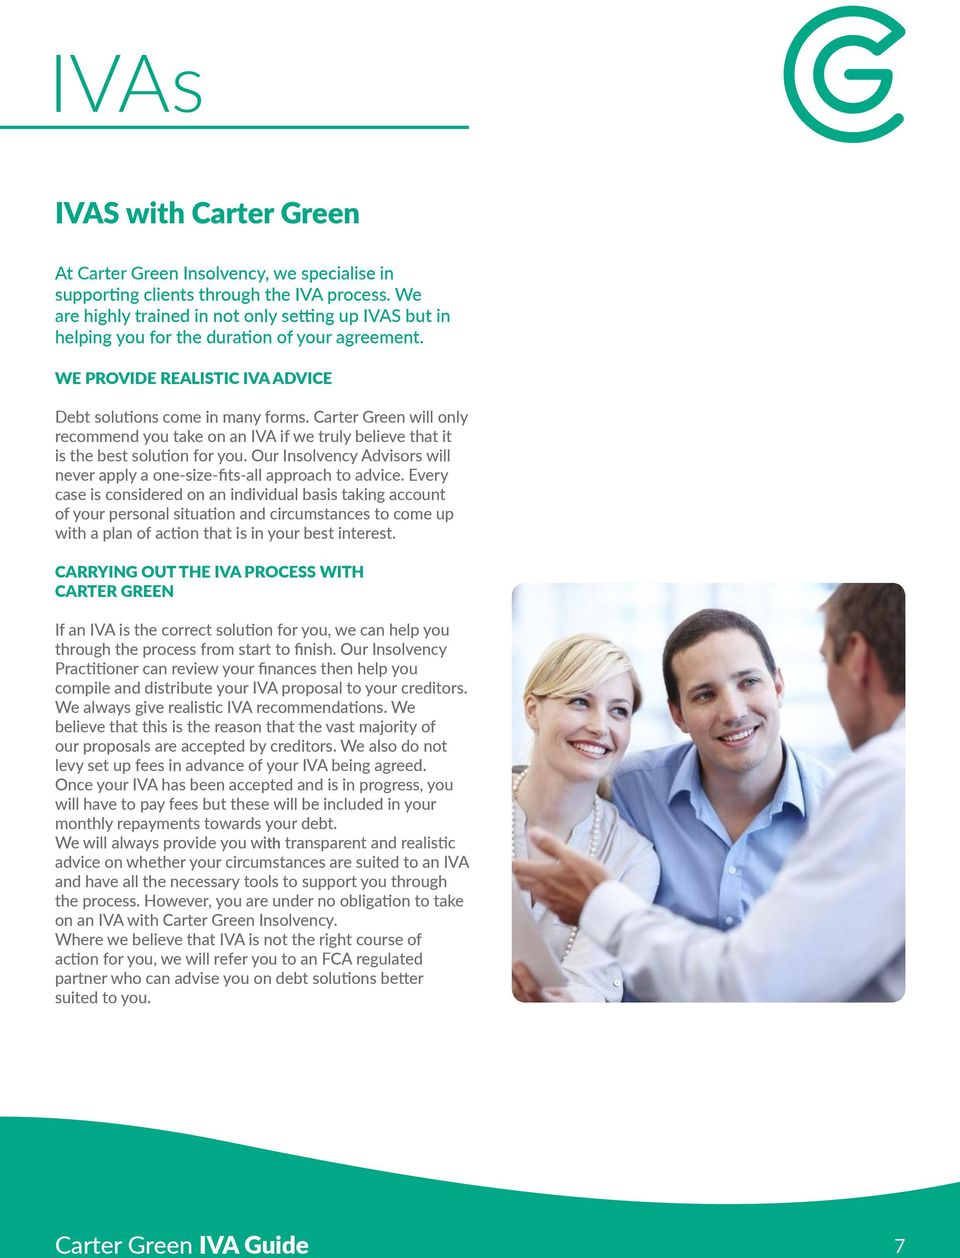 Carter Green will only recommend you take on an IVA if we truly believe that it is the best solution for you. Our Insolvency Advisors will never apply a one-size-fits-all approach to advice.